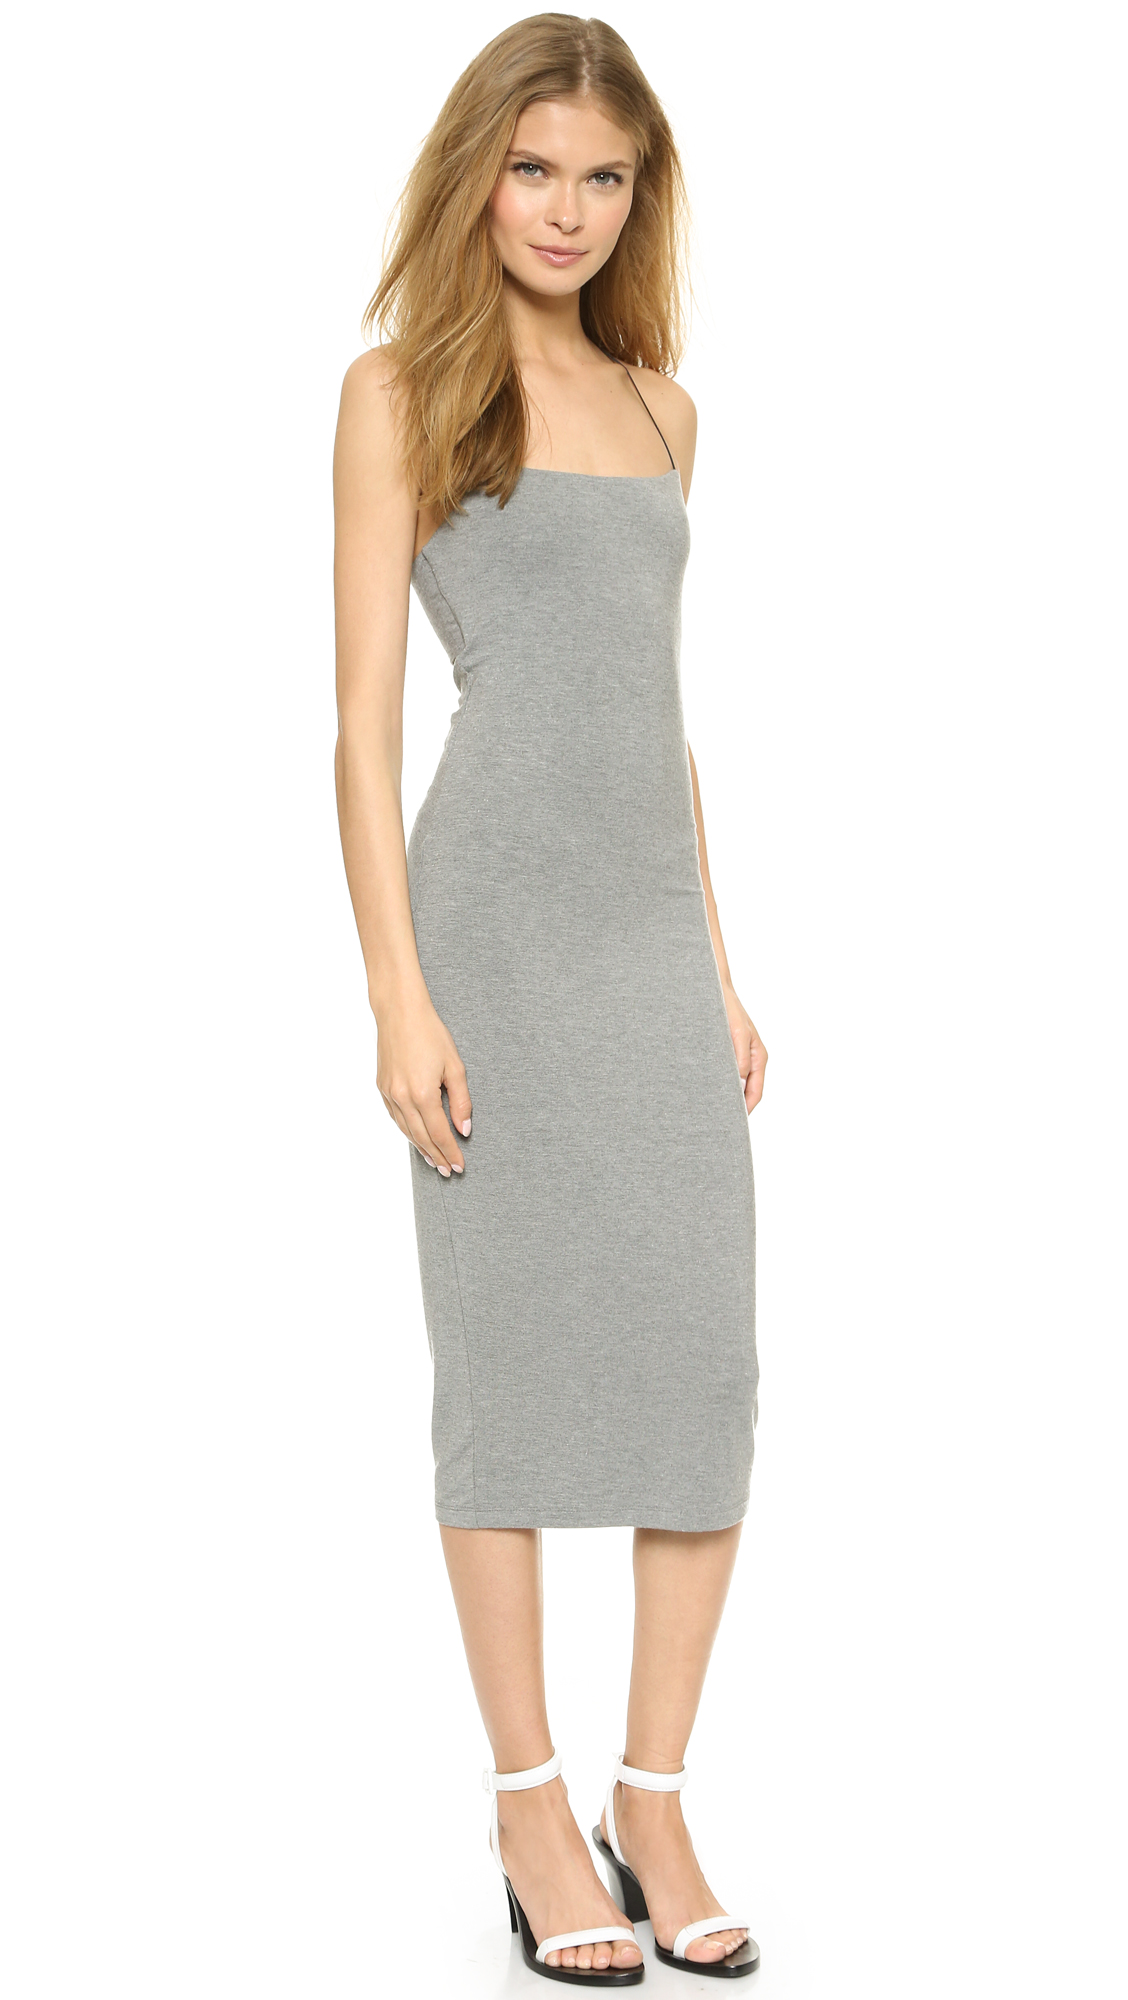 T By Alexander Wang Dresses And Clothing Cj Online Stores